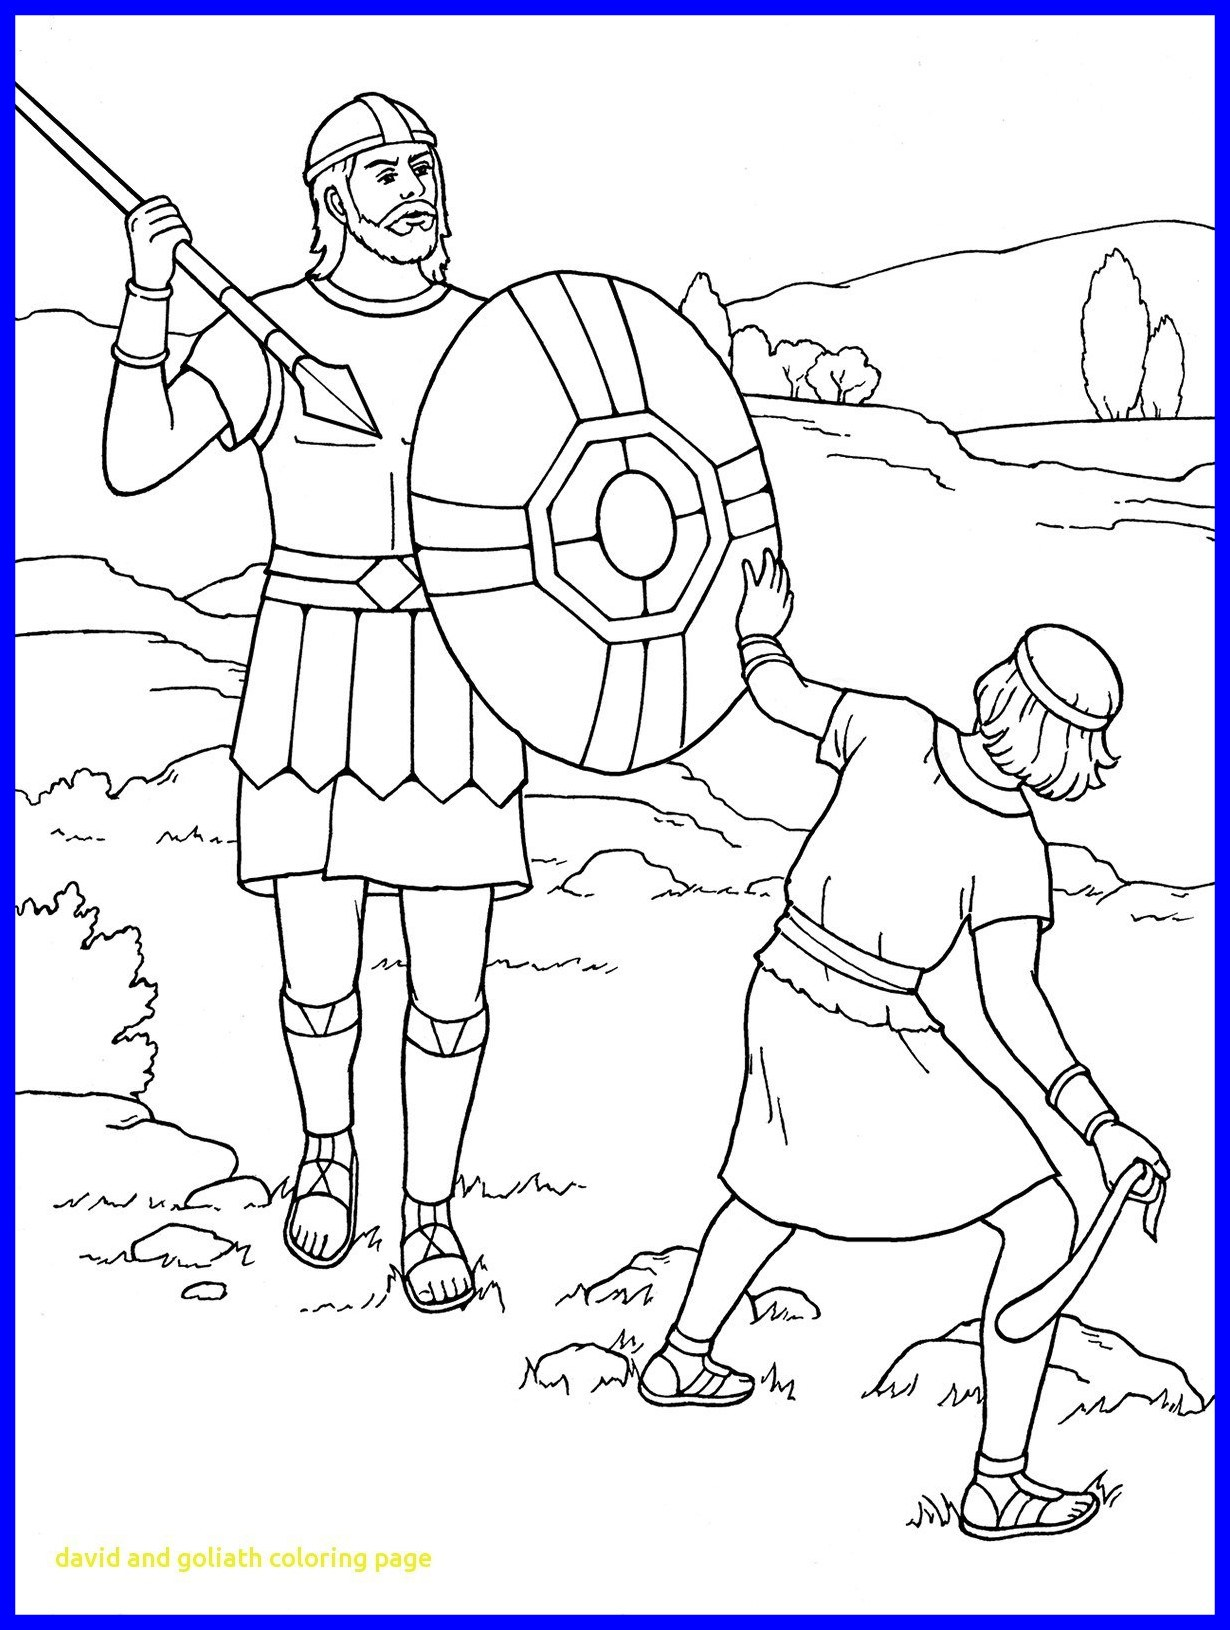 1230x1630 amazing david and goliath coloring page colorng co for jonathan